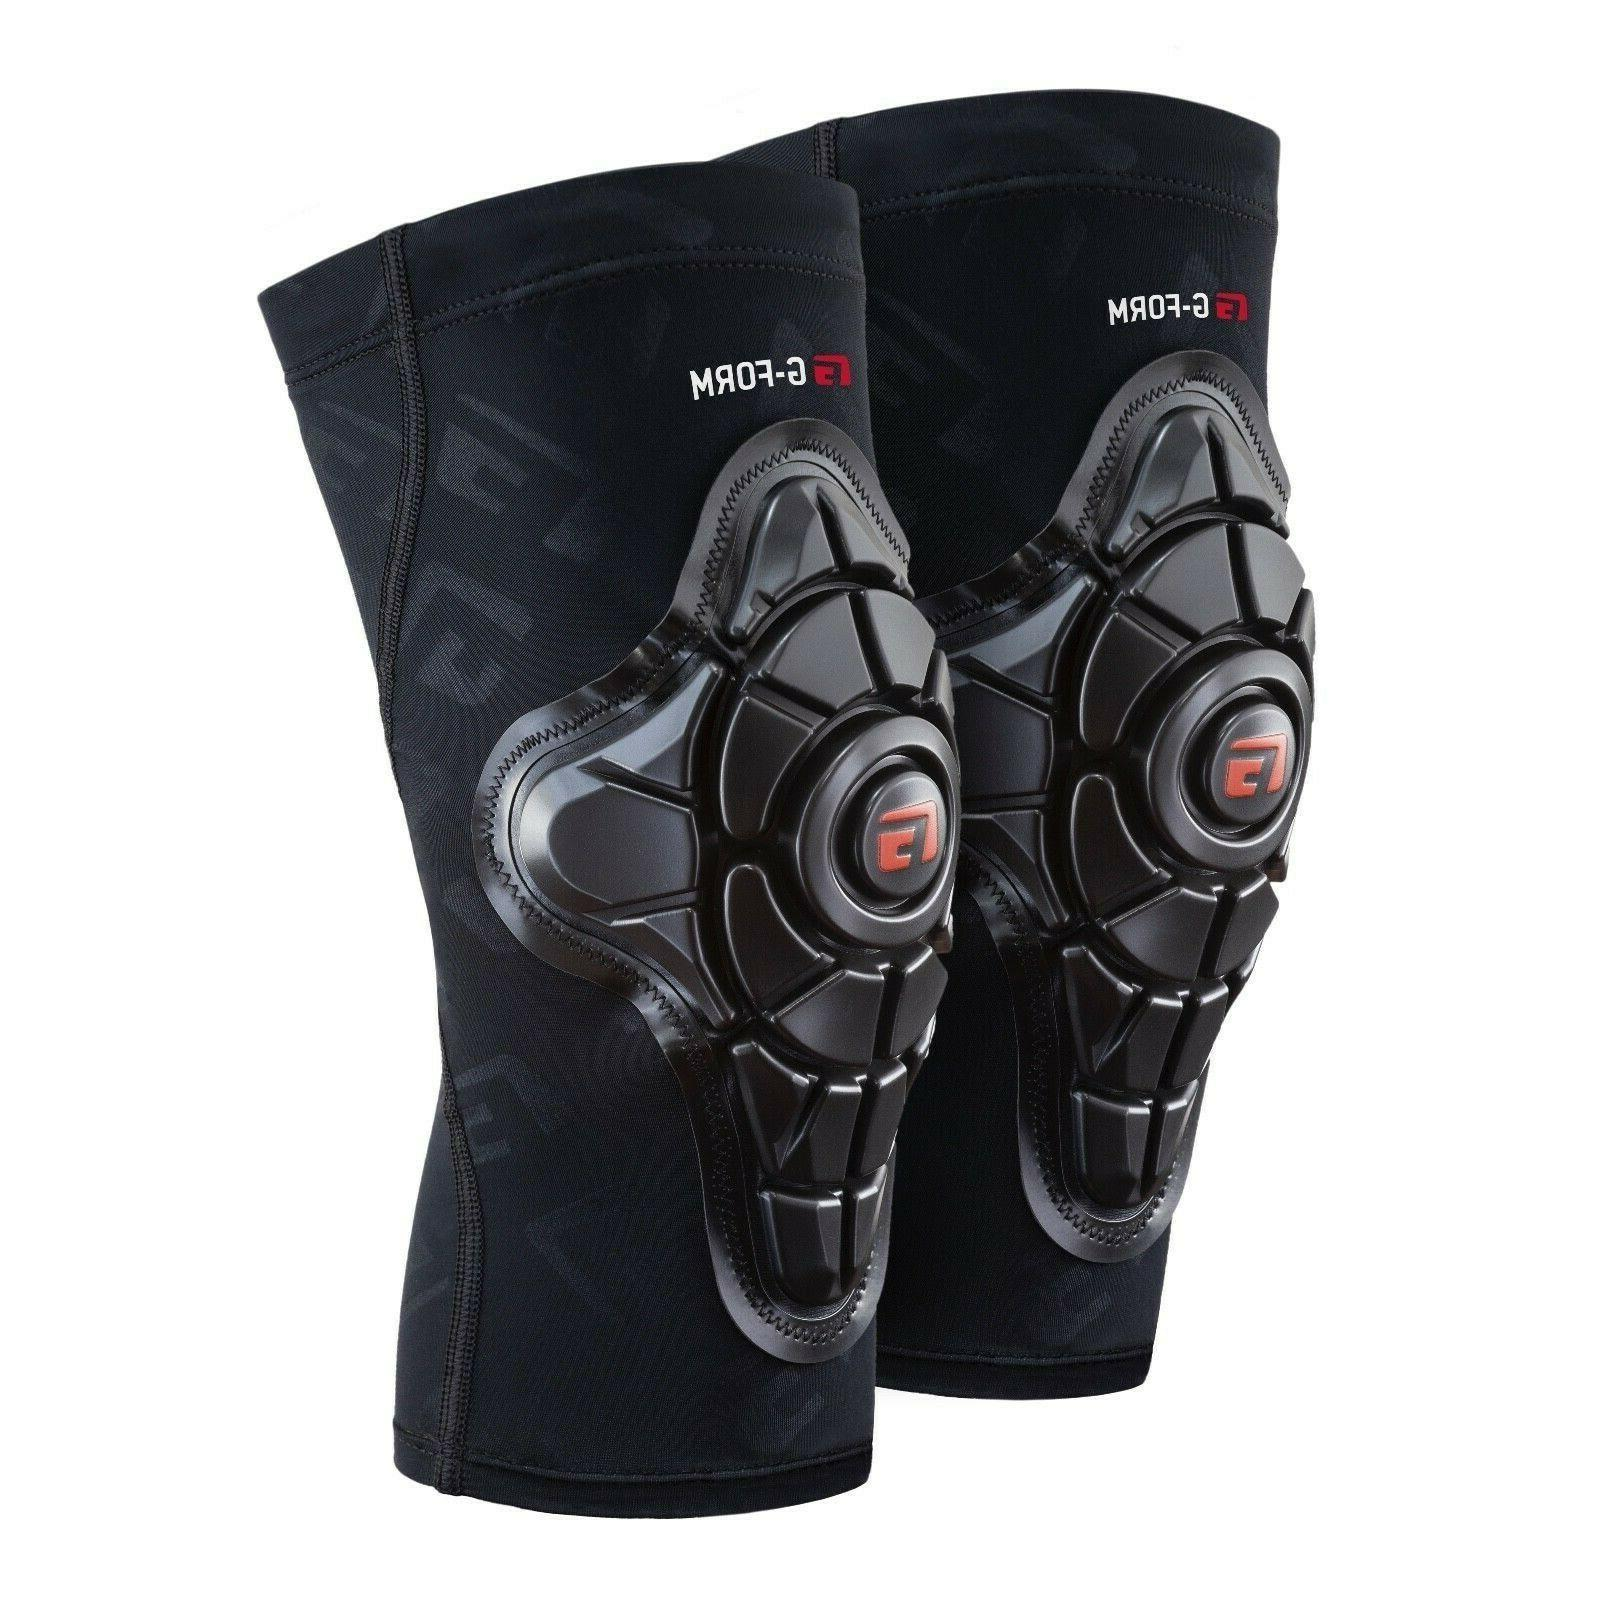 G-Form Knee Pads Guard Pro-X MTB BMX DH Bicycle Protective G